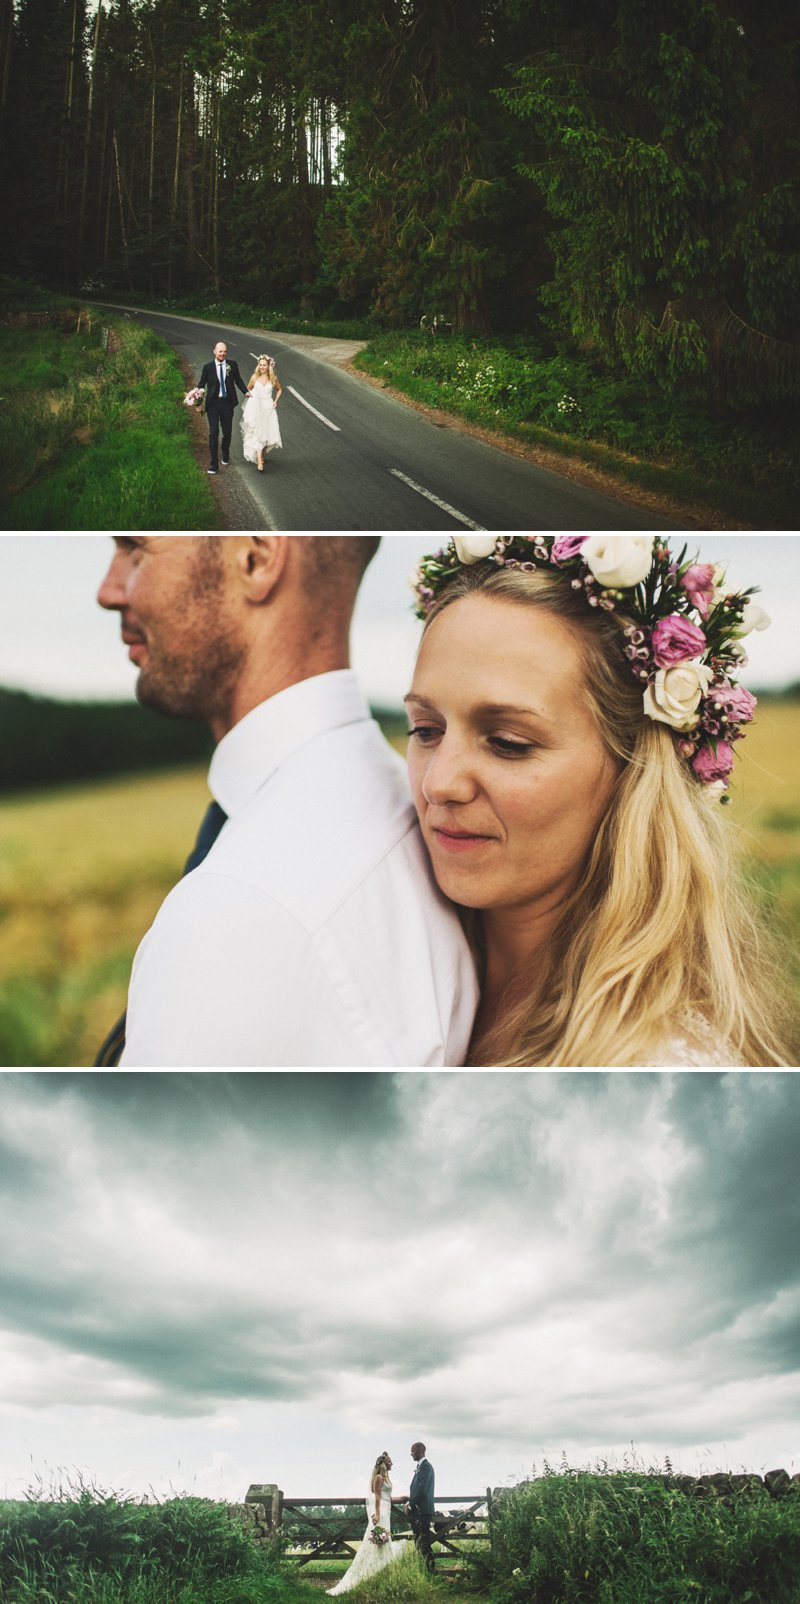 Rustic Marquee Wedding At Mallard Grange In Yorkshire With A Dusty Pink, Cream And Grey Colour Scheme With Bride In Gown From Eternity Bridal With A Vintage VW Camper Van 11